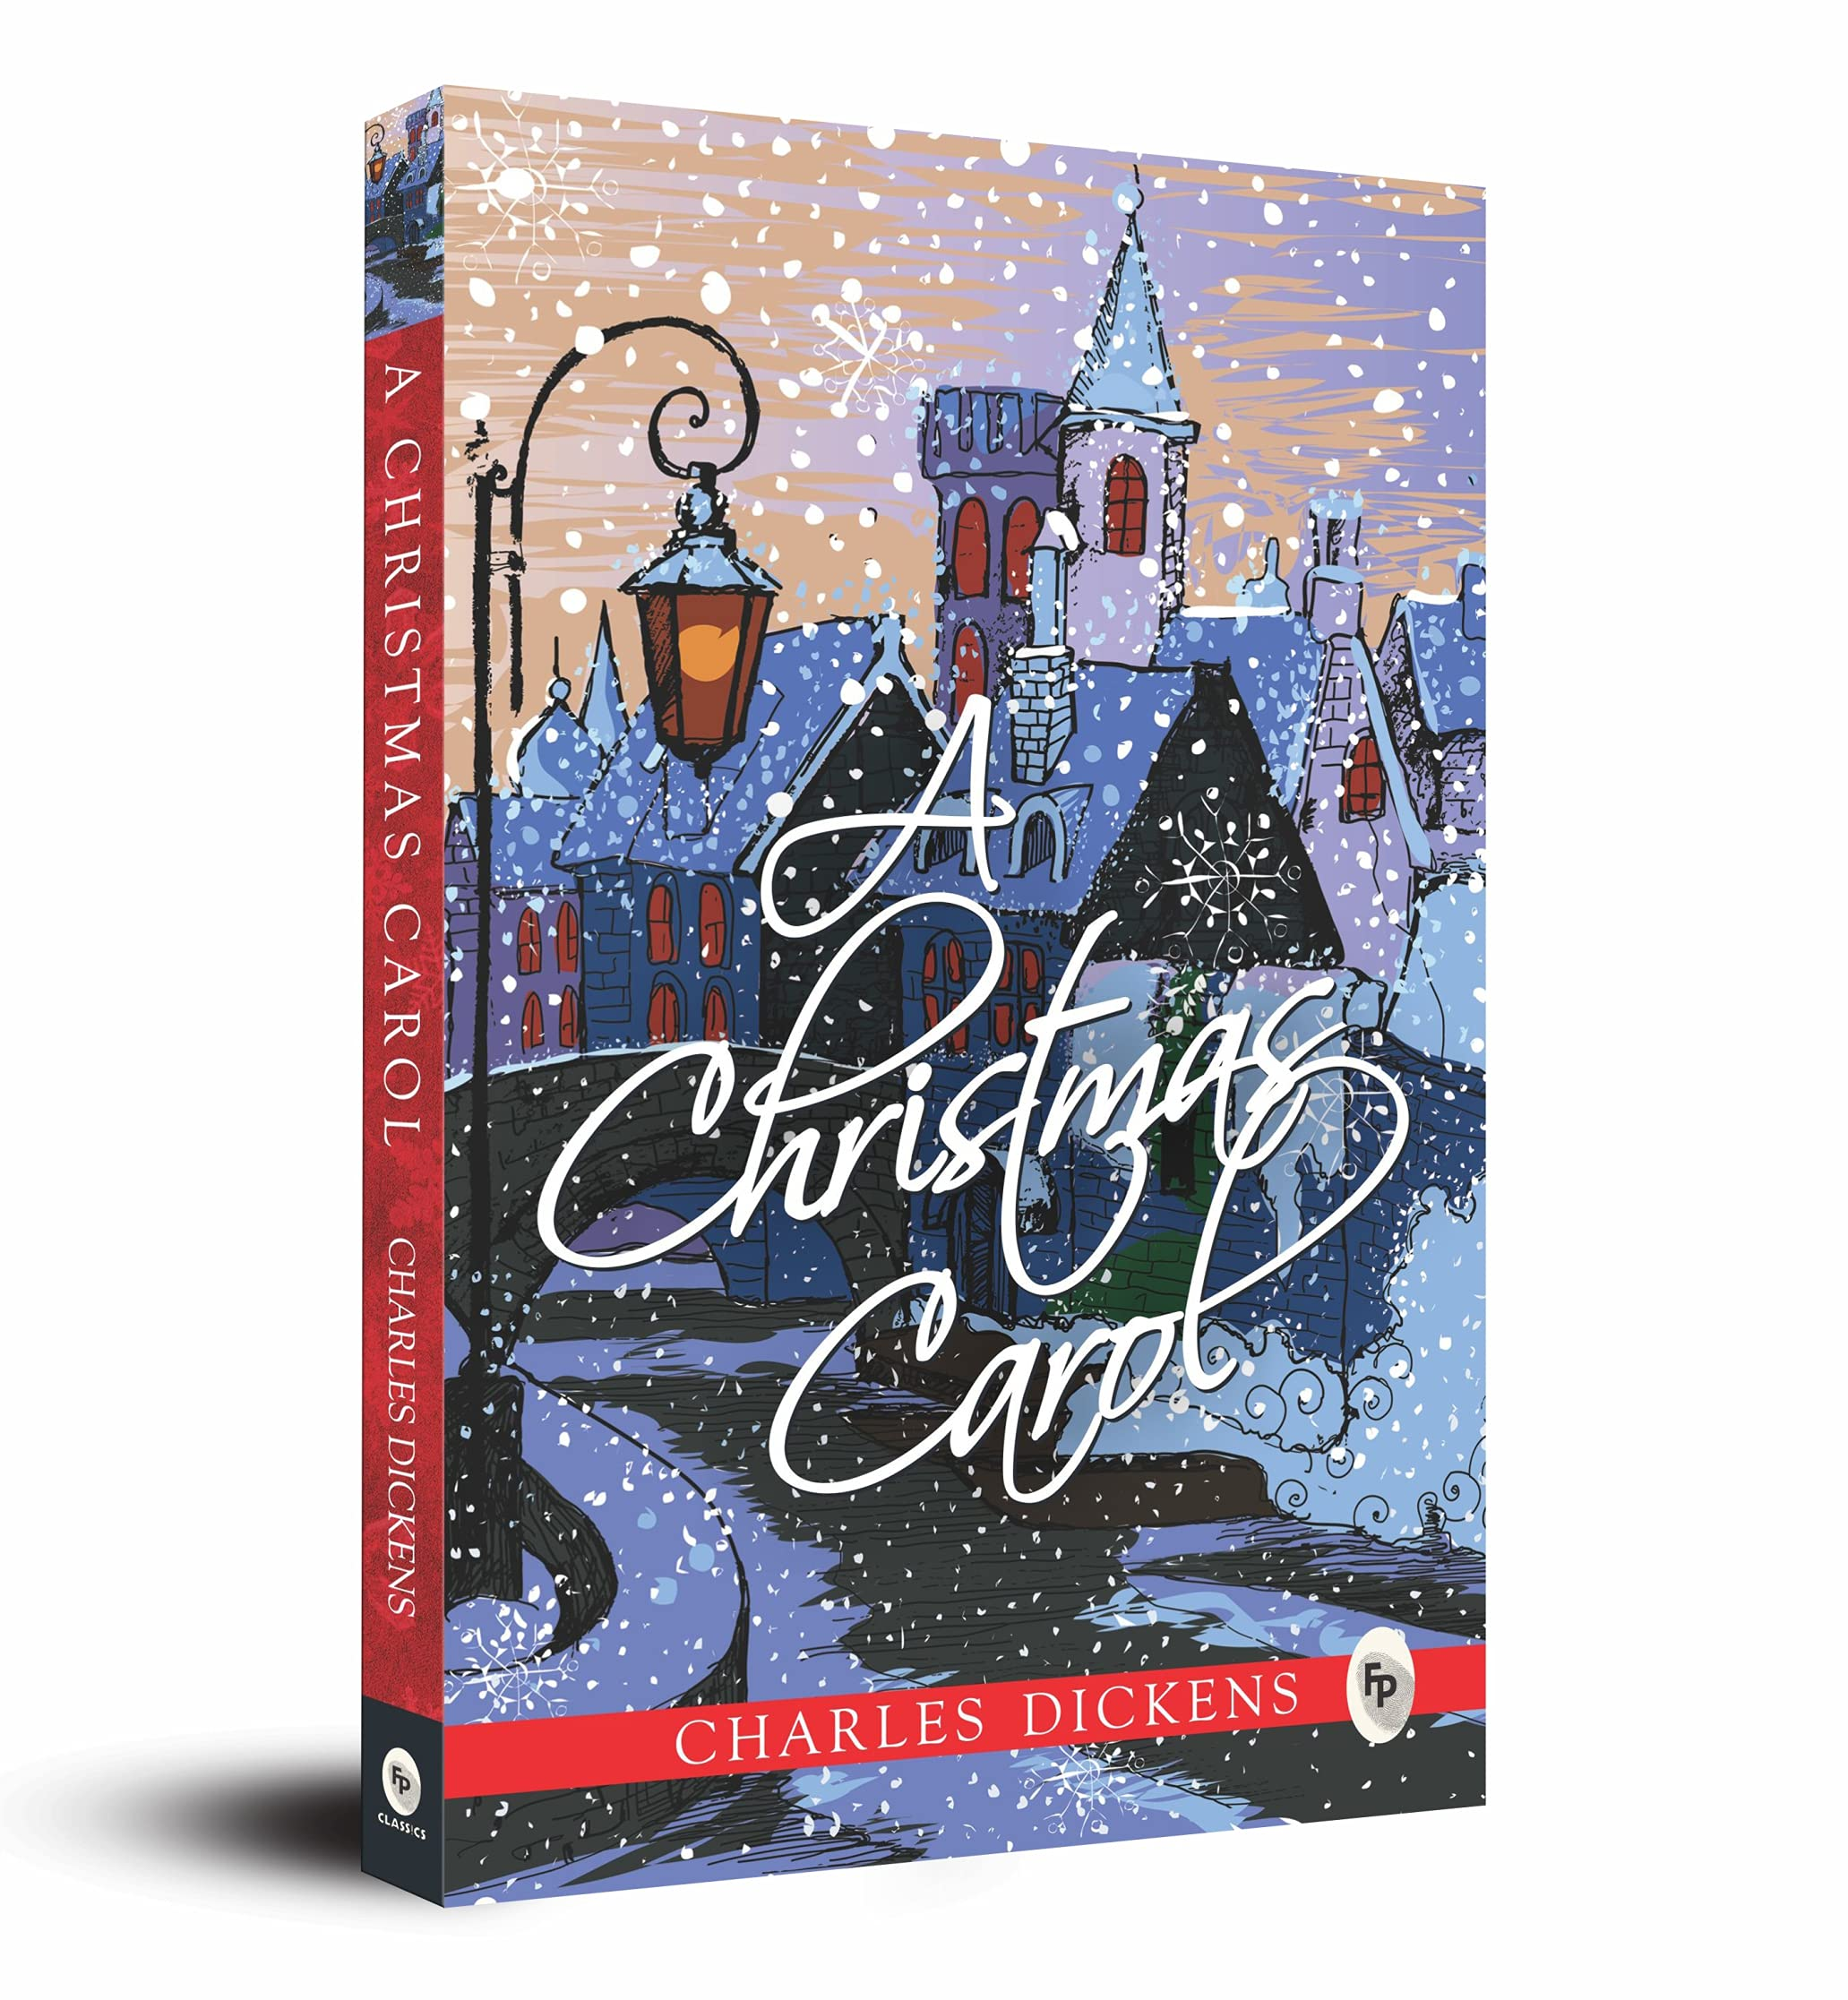 Christmas Carol London 2021 Show Times Buy A Christmas Carol Book Online At Low Prices In India A Christmas Carol Reviews Ratings Amazon In